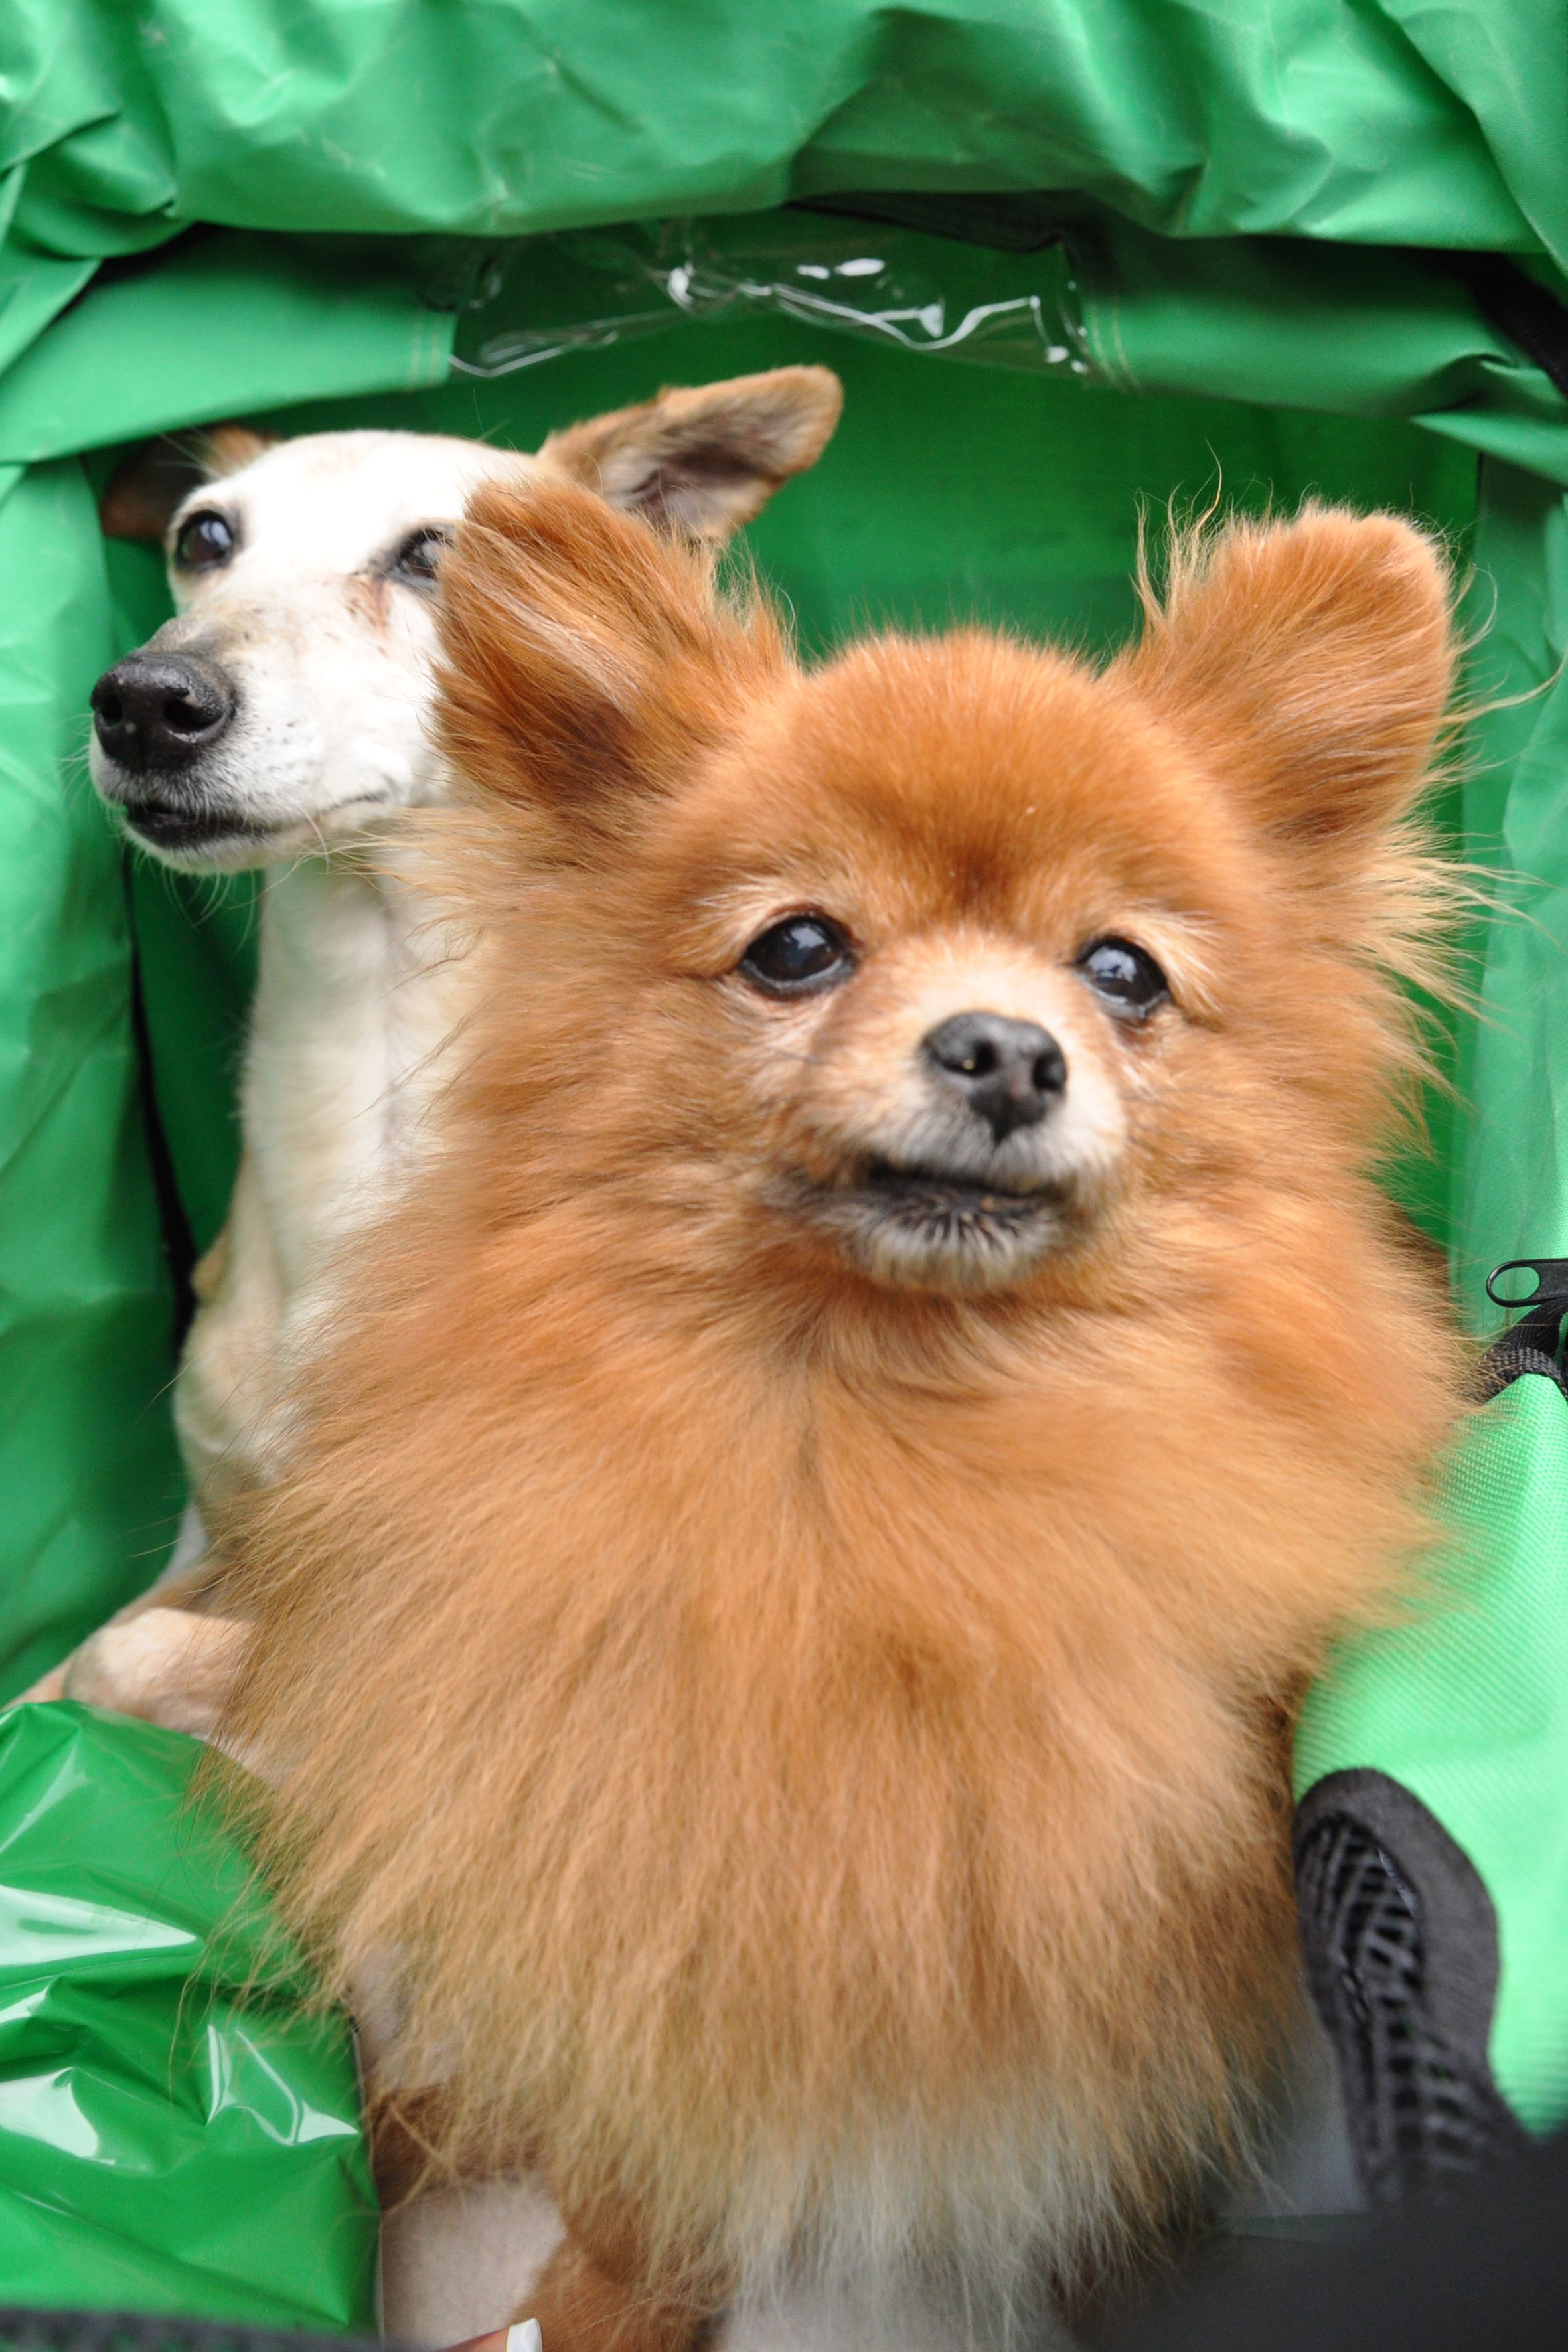 Two toy dogs in carriage photo